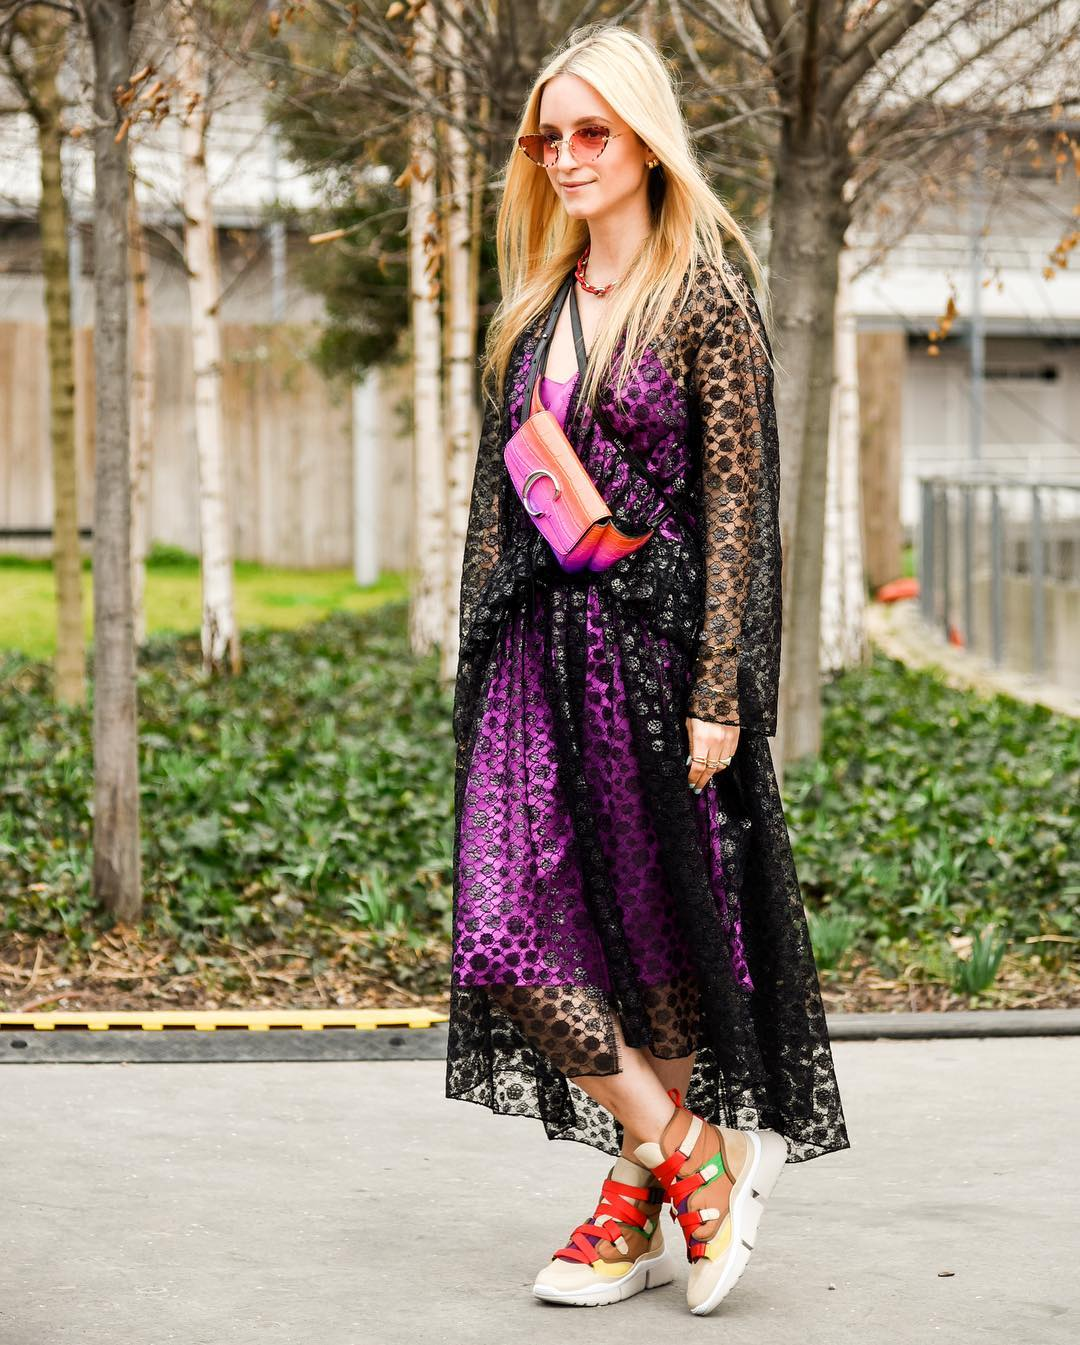 paris-fashion-week-fall-2019-street-style-charlotte-groeneveld-in-chloe